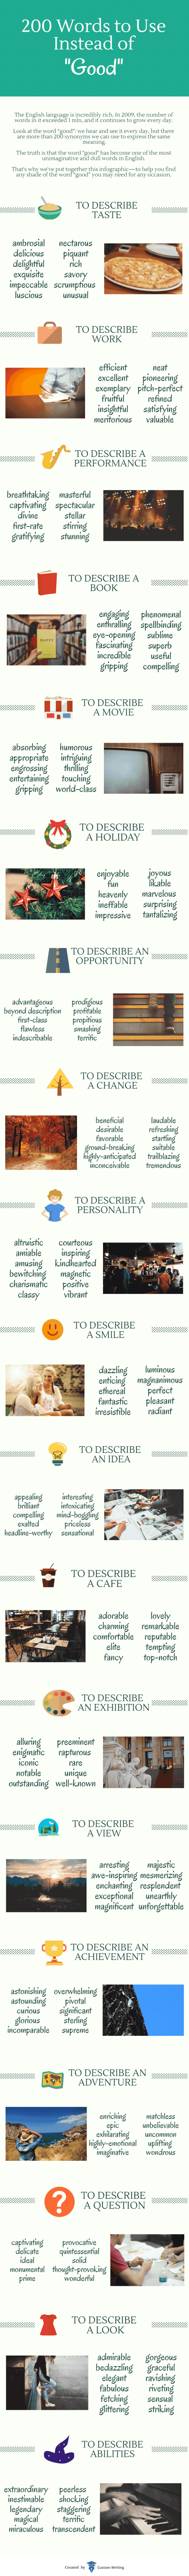 "Infographic: 200 Good Words to Use Instead of ""Good"" Infographic"